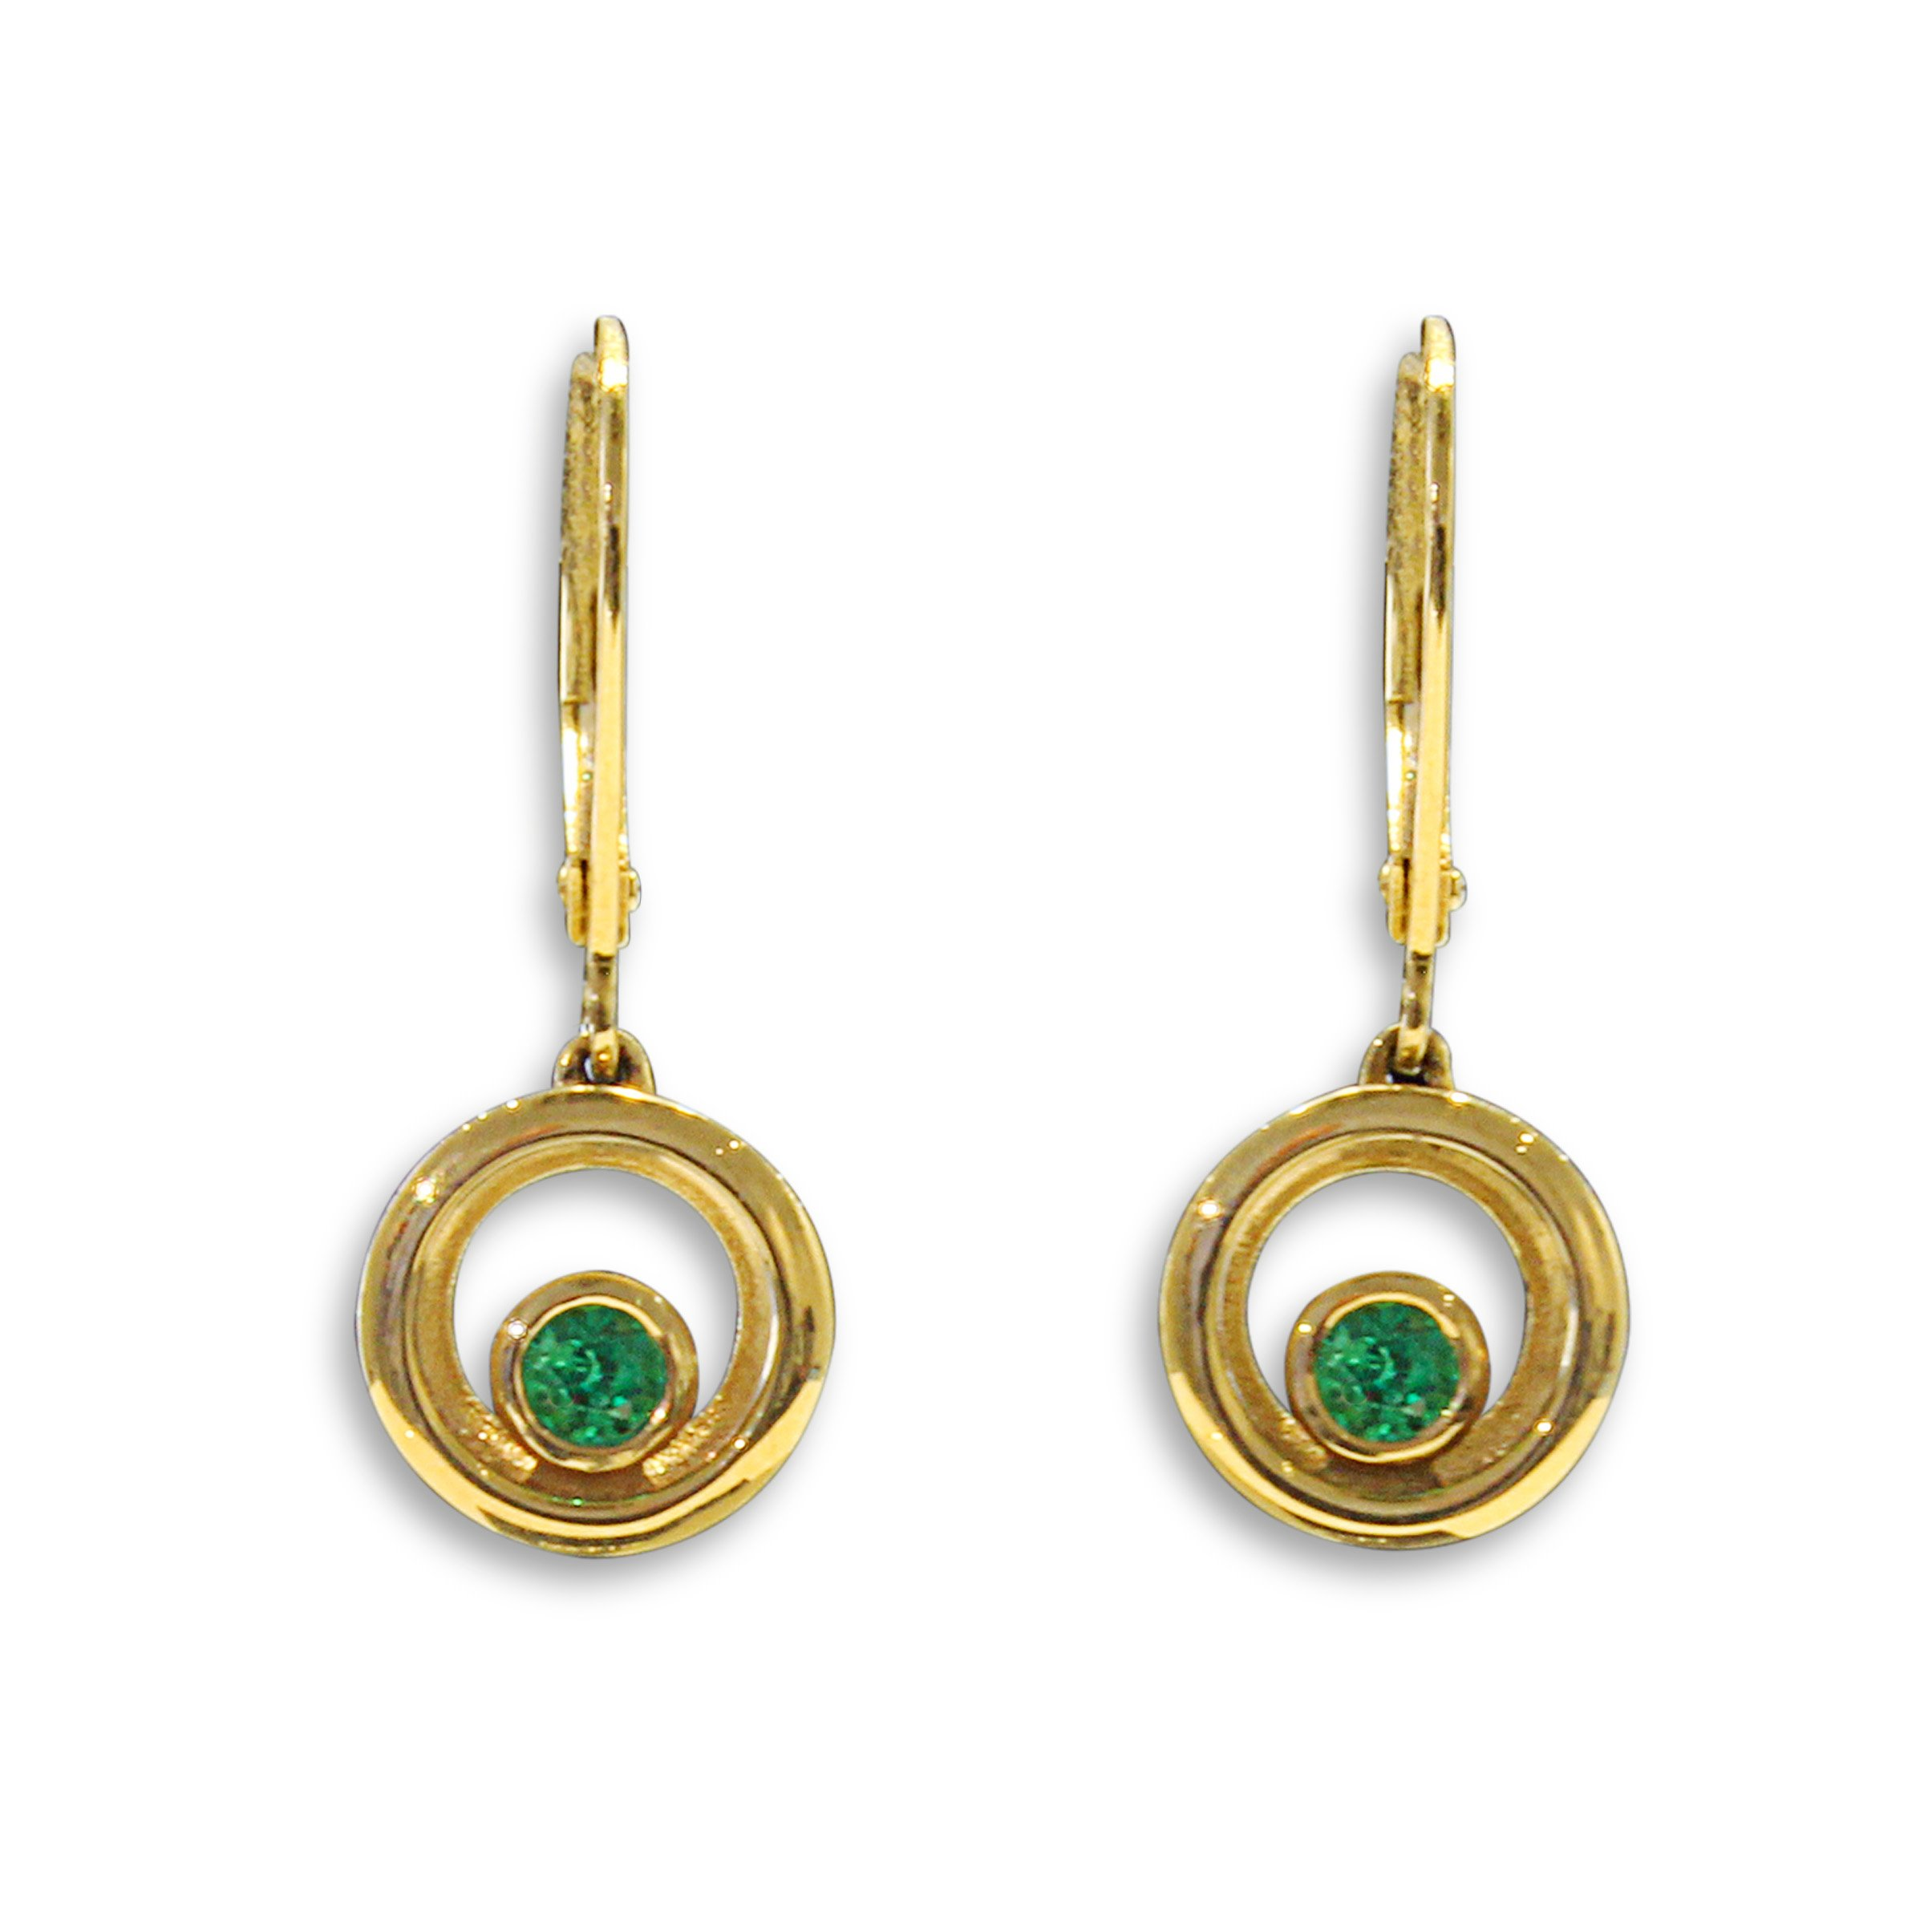 gold treasures product diamond jewellery white earrings description emerald previously loved